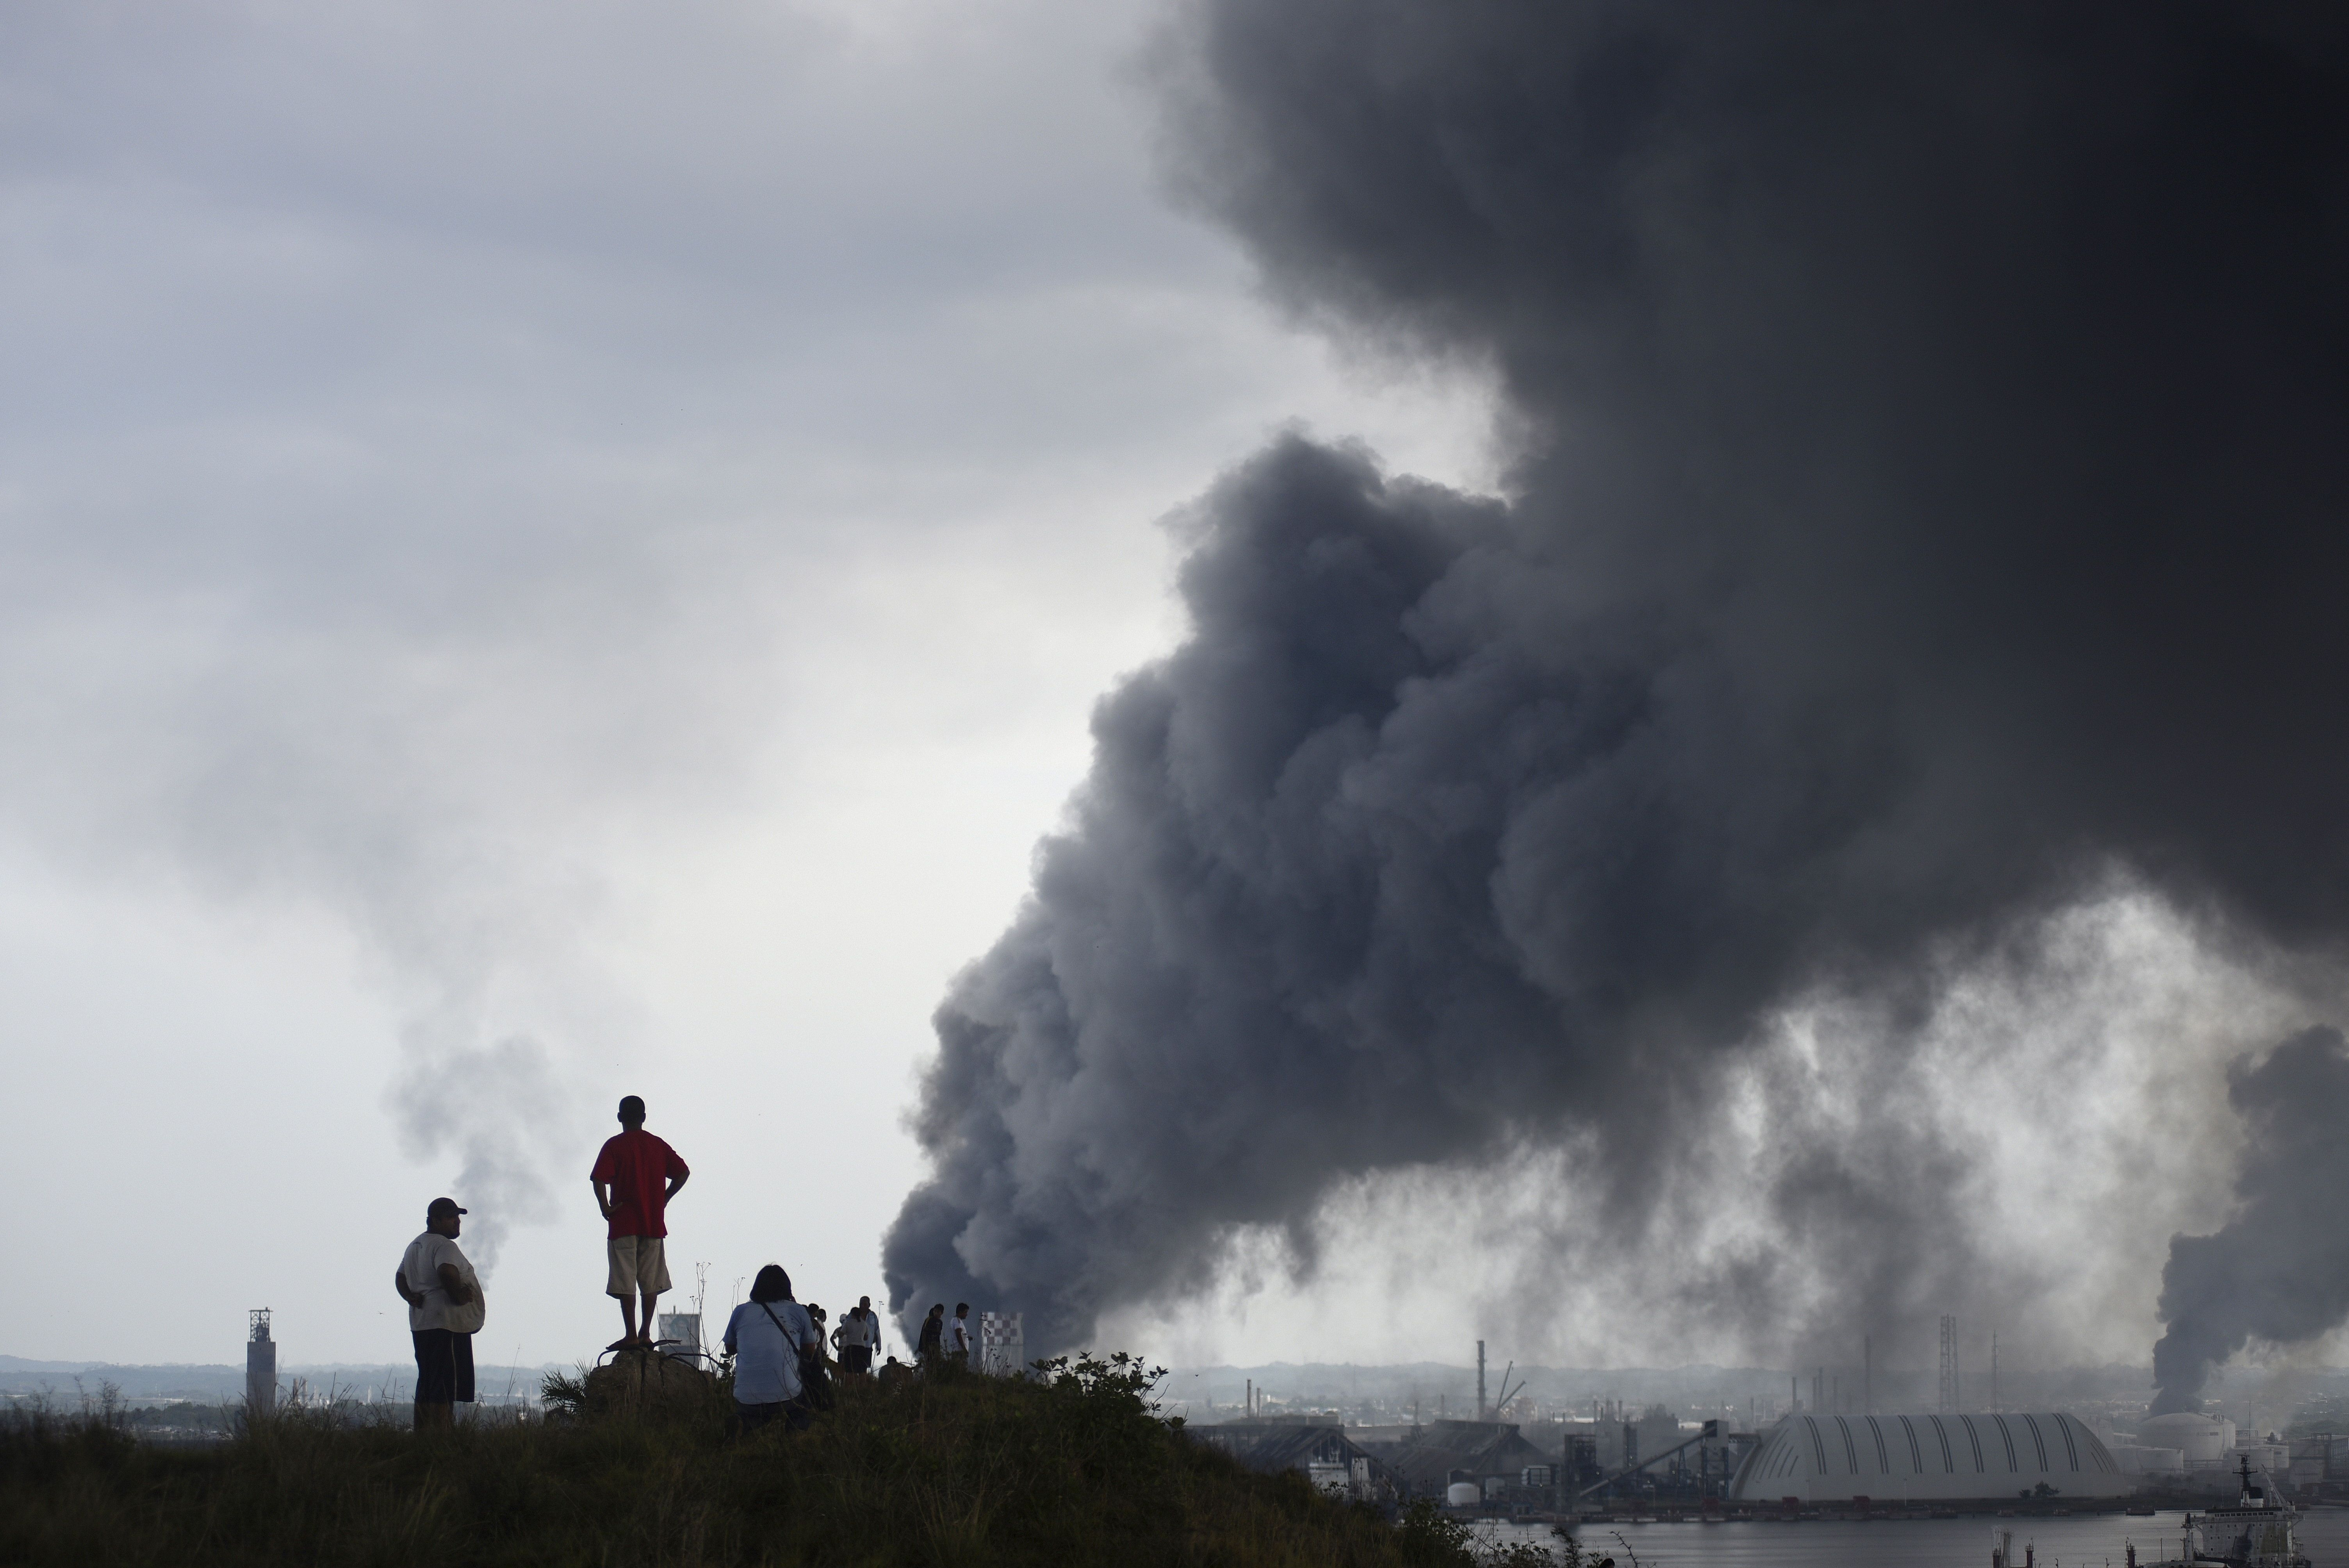 Smoke rosefrom the explosion site at Pemex's Pajaritos petrochemical complex in Coatzacoalcos, Veracruz state, Mexico.